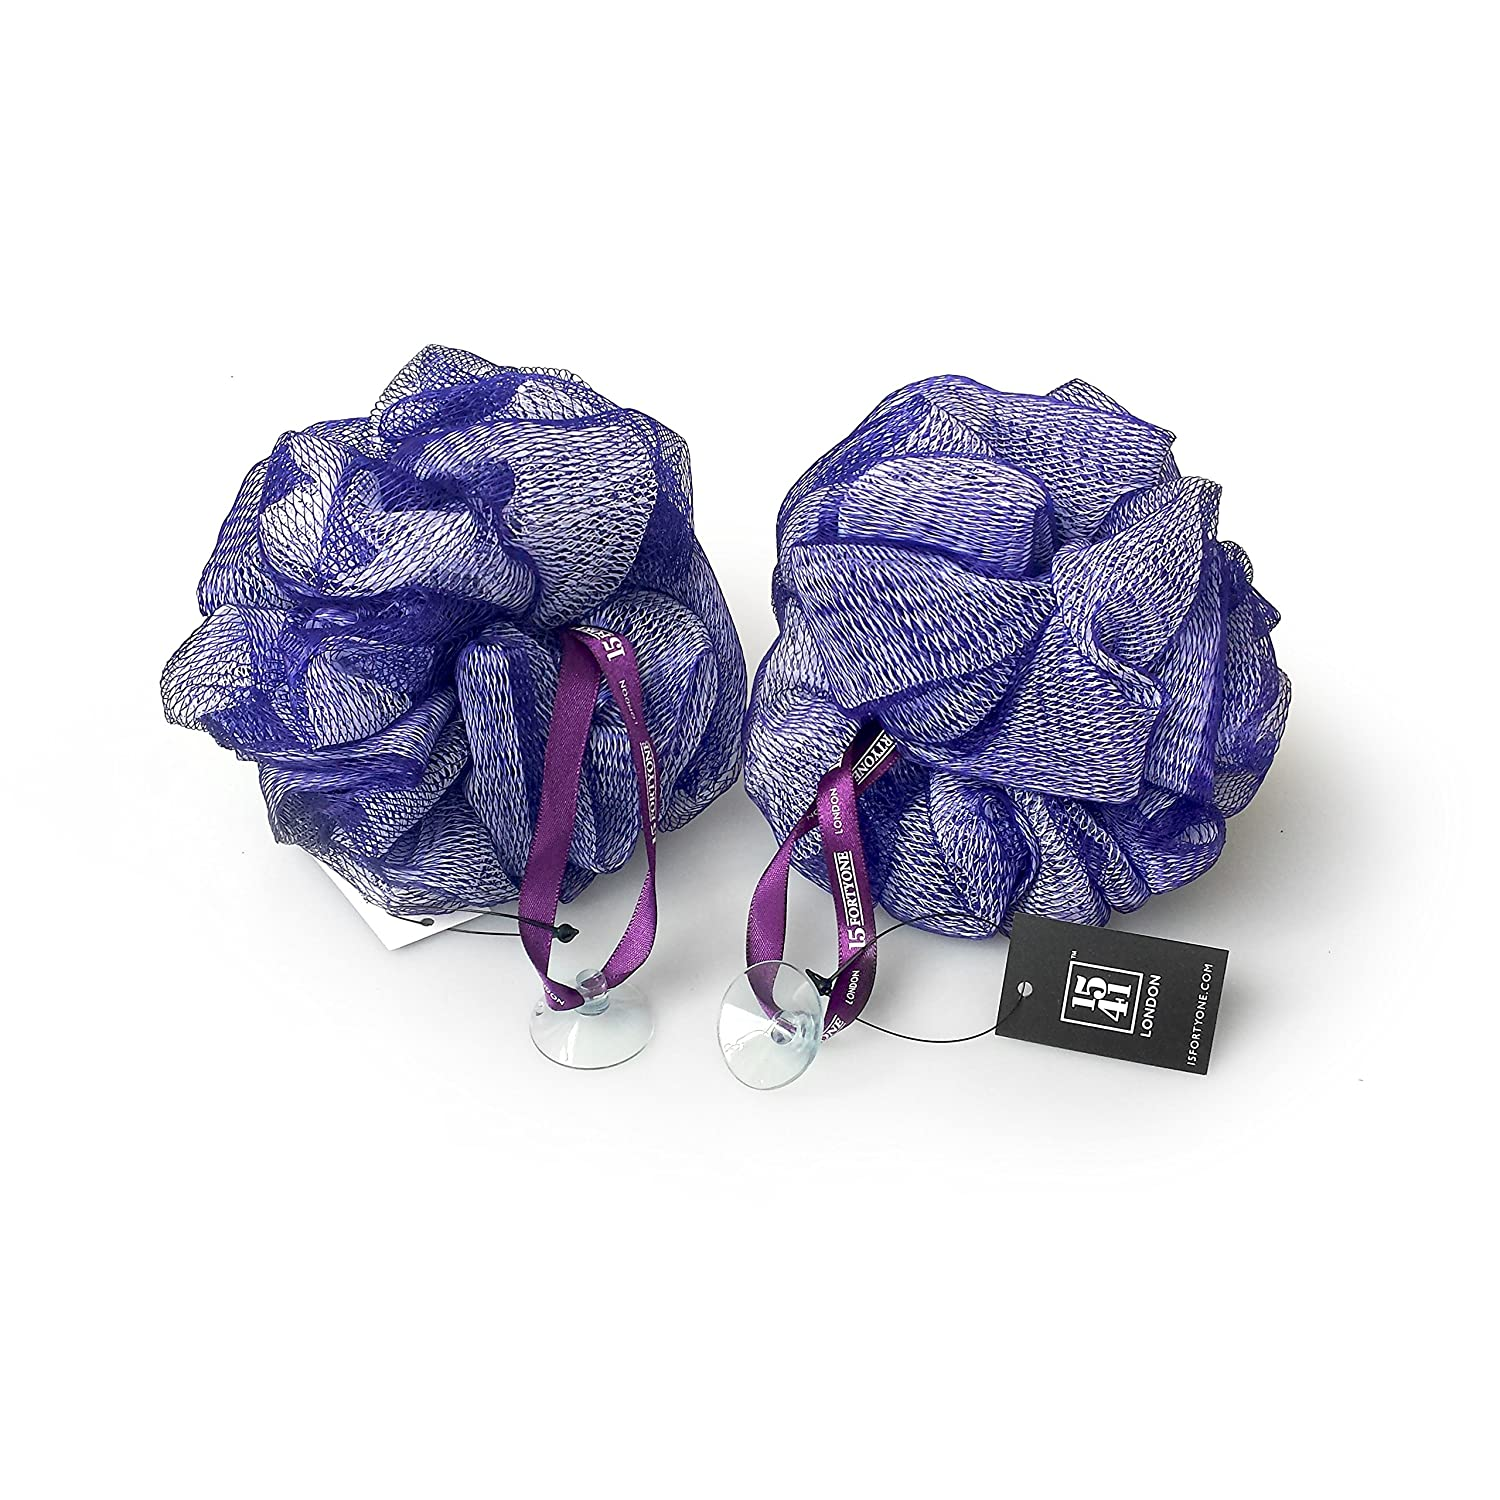 1541 London Exfoliating Bath & Shower Body Puff / Scrunchie / Buffer TWIN PACK (Aubergine)